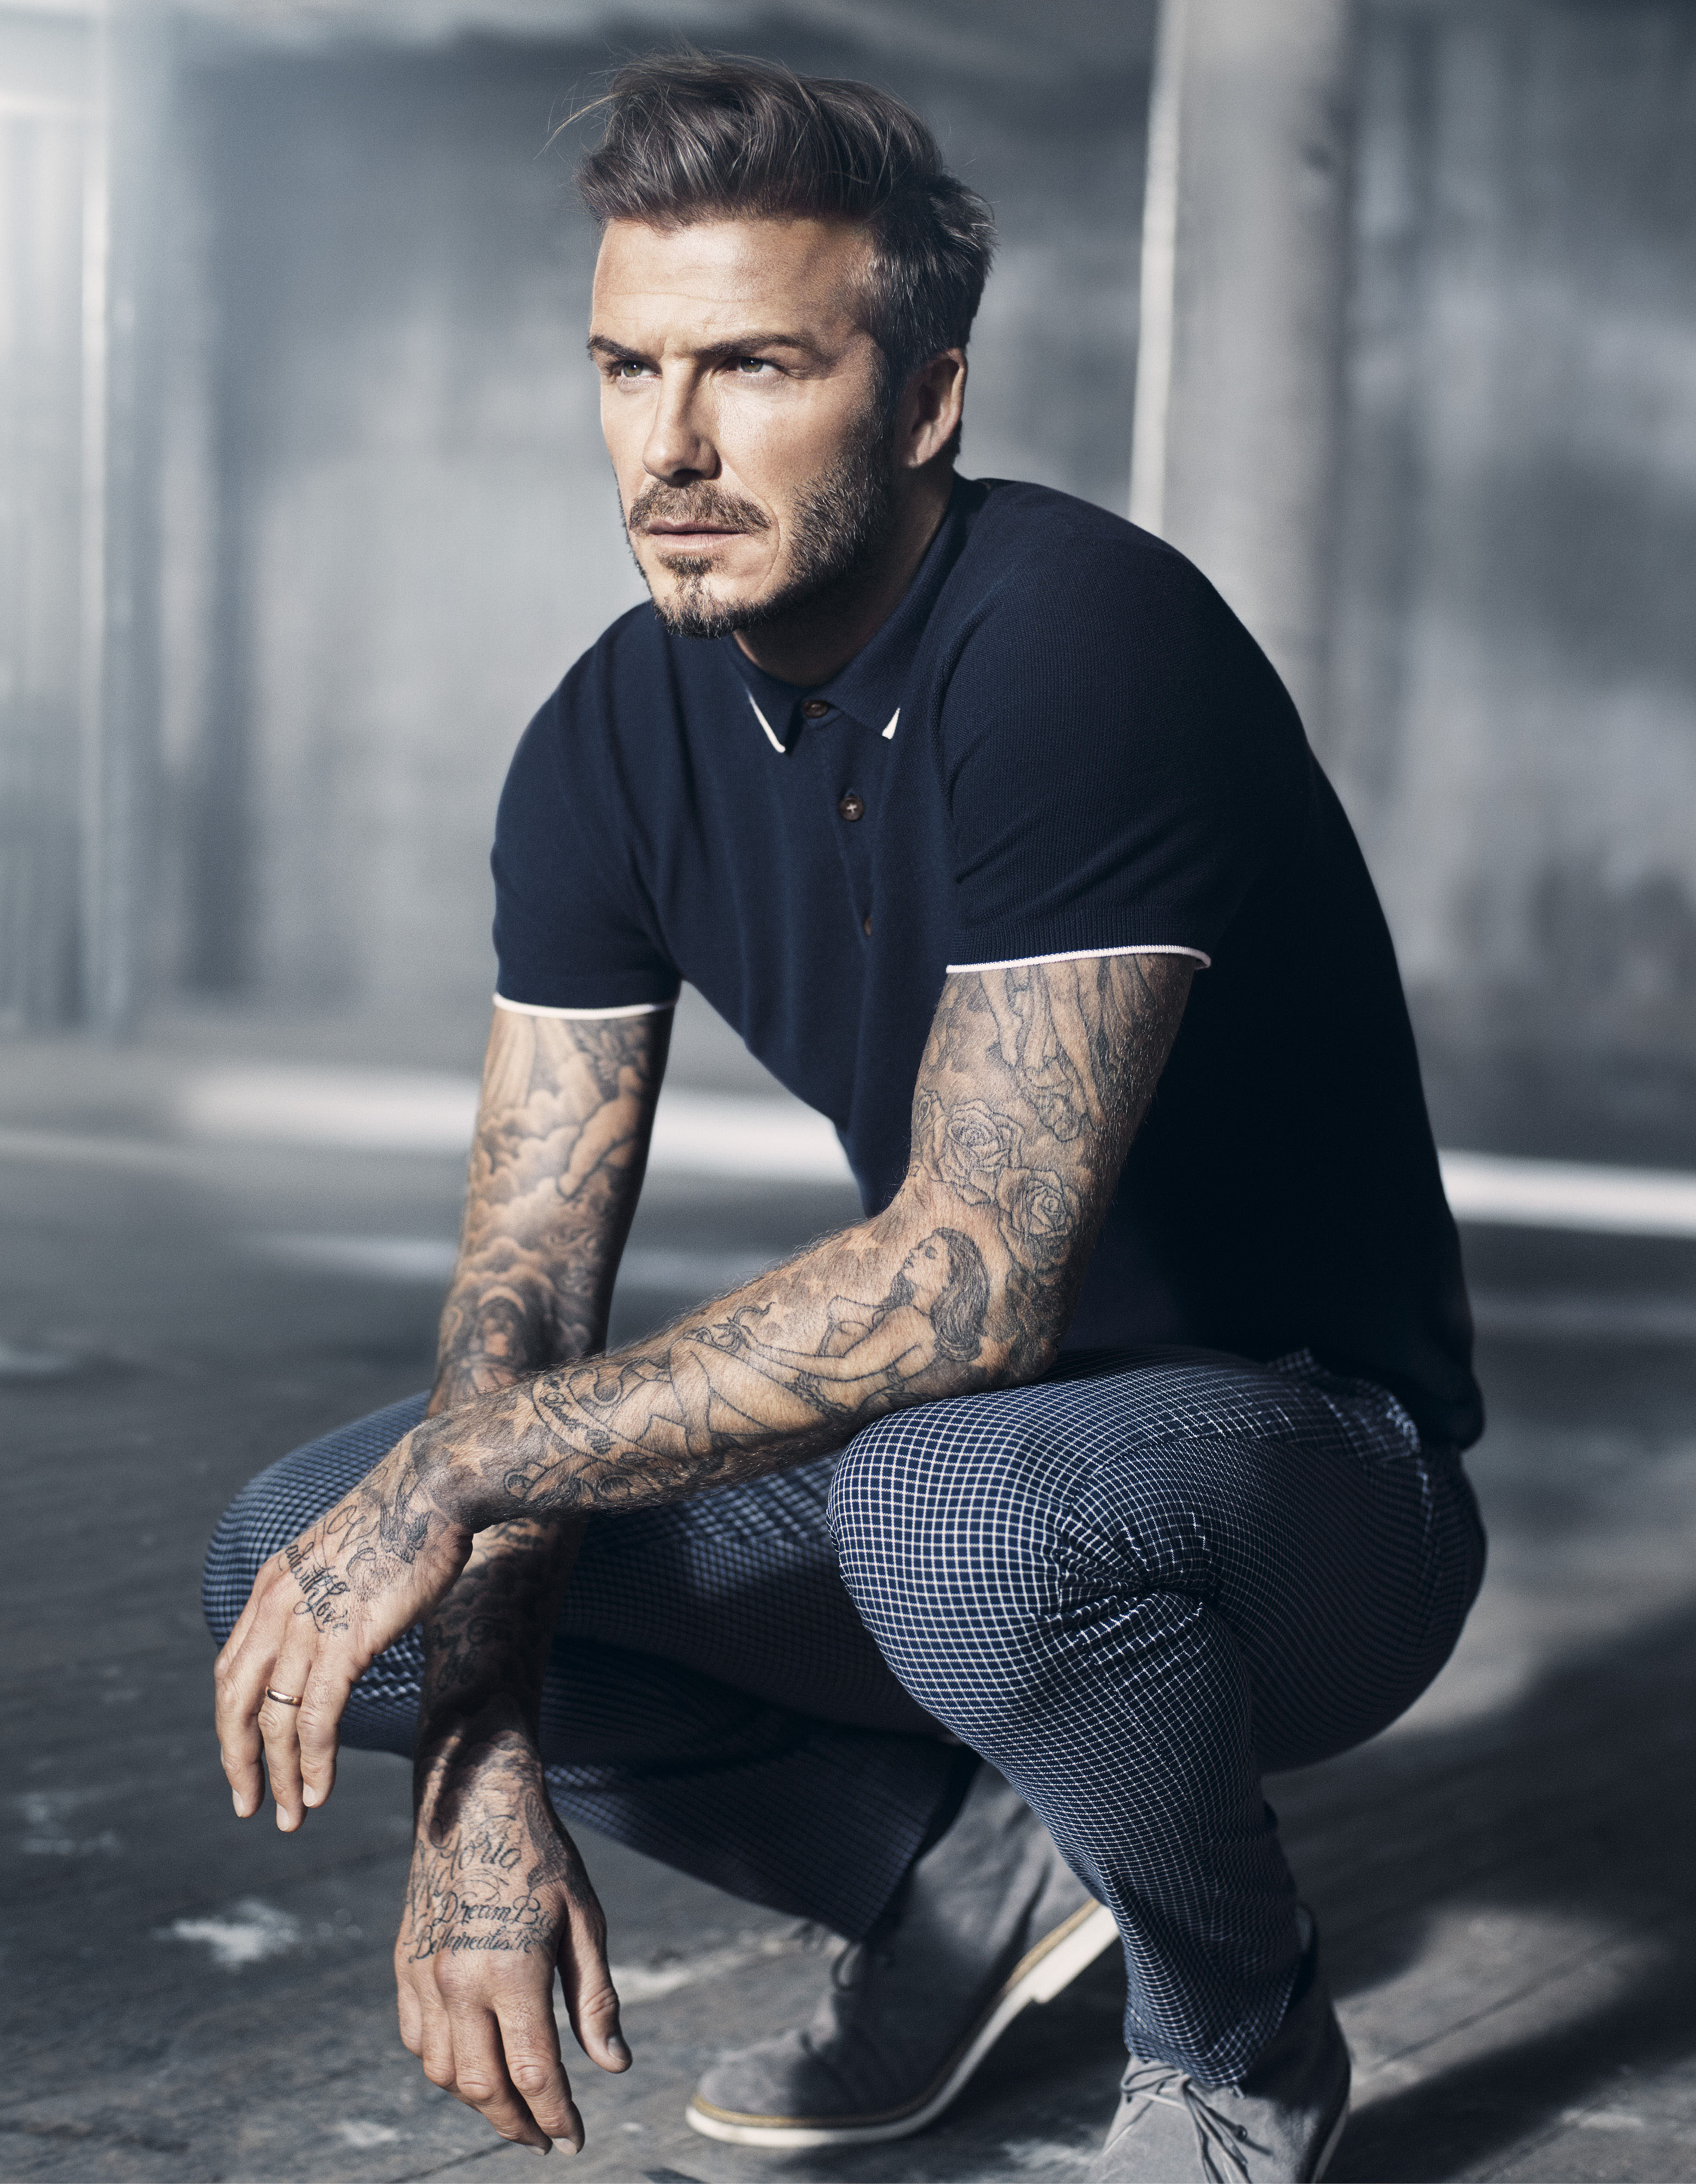 David Beckham Wallpaper 2015 5